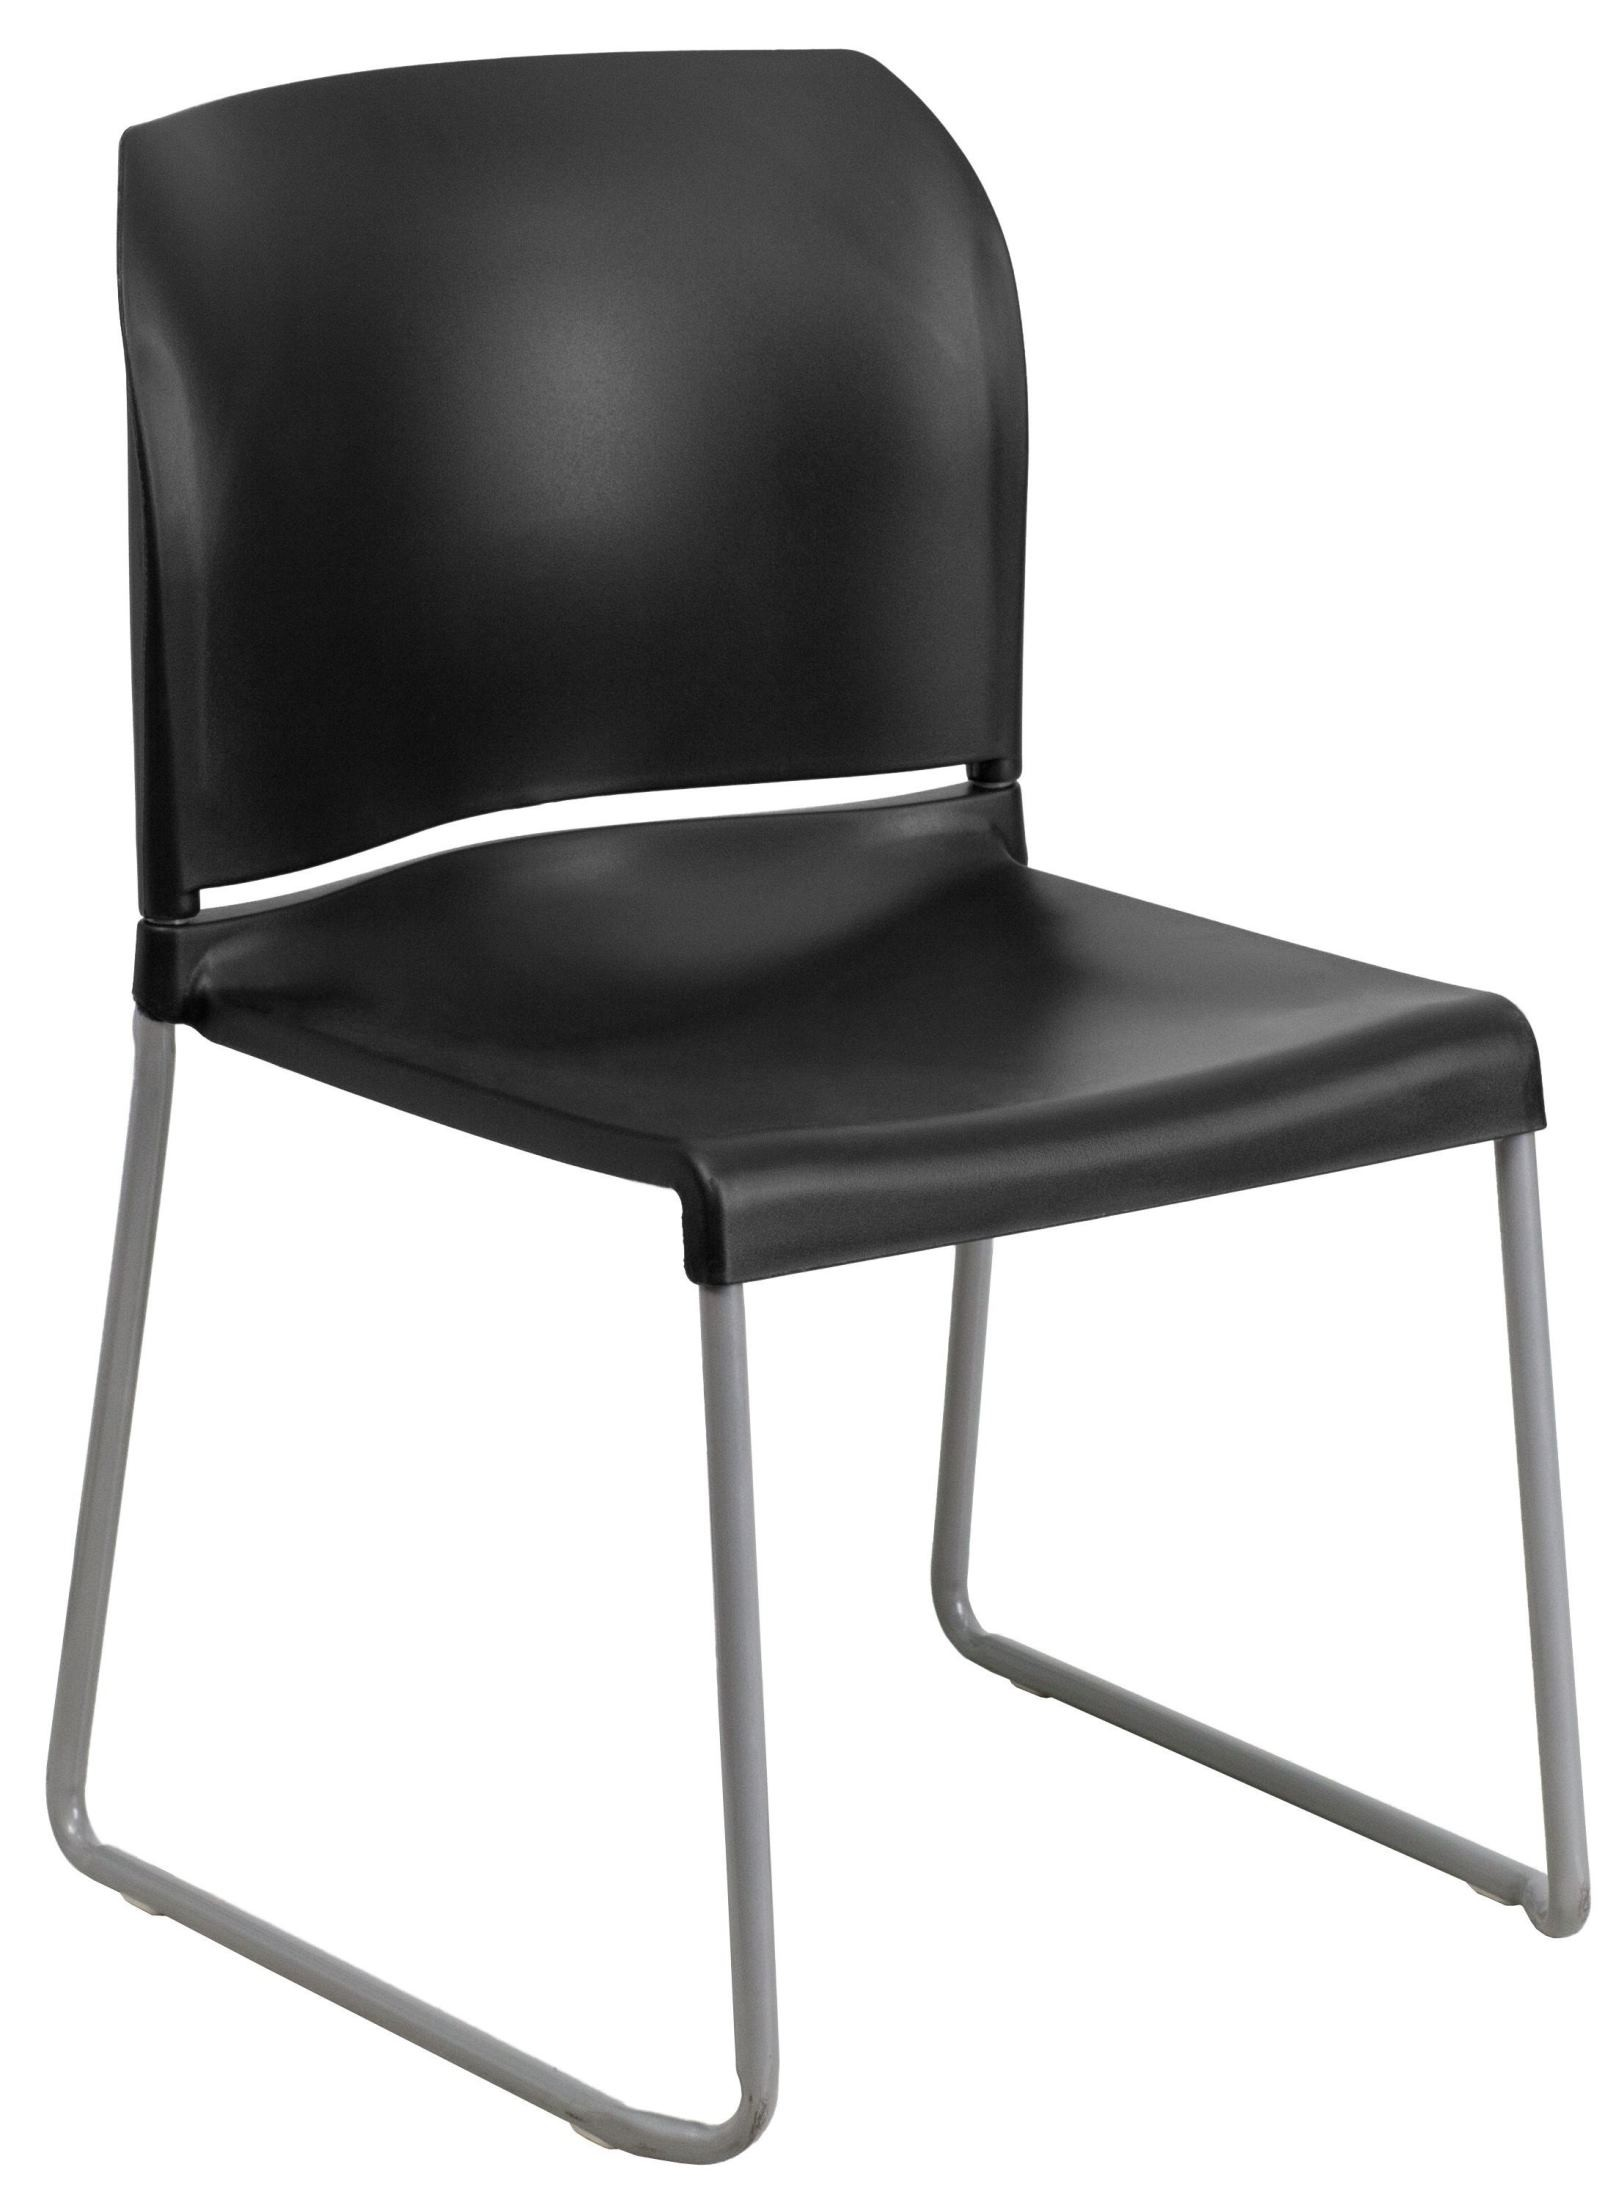 Hercules Series Black Full Back Contoured Stack Chair With